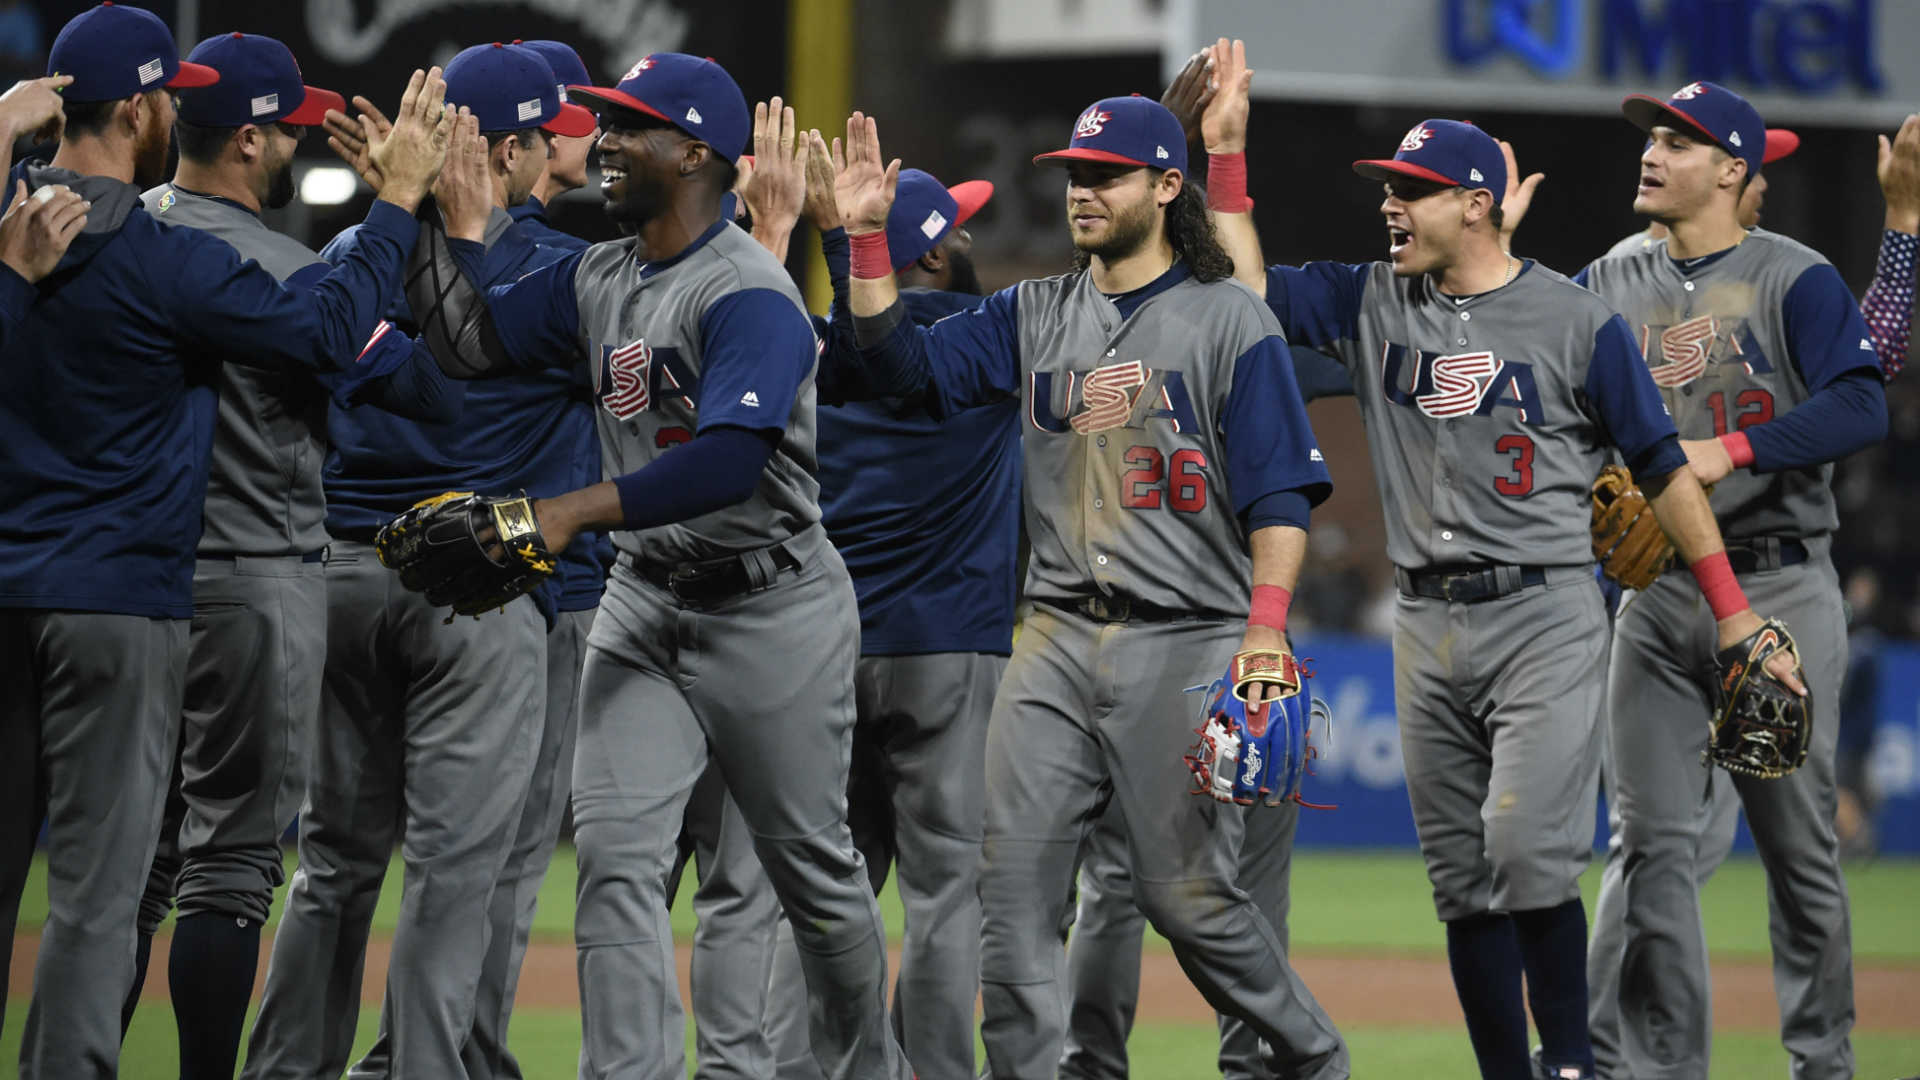 Kinsler criticizes Puerto Rican, Dominican WBC teams for showing emotion, passion